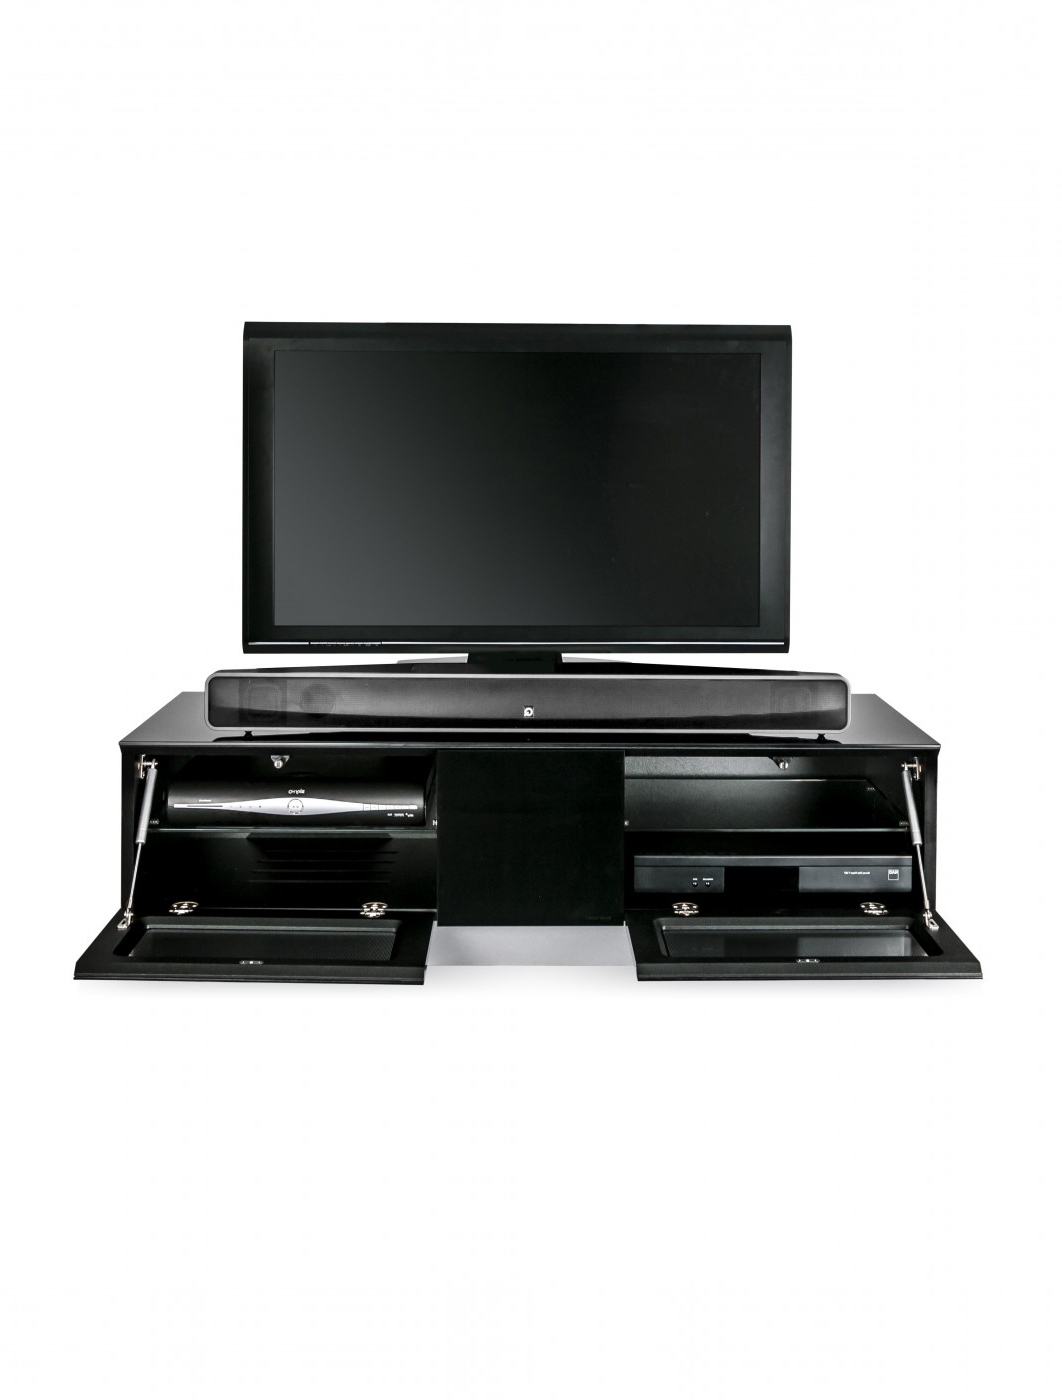 Tv Stand Element Modular Emtmod1250 Blk Tv Cabinet Pertaining To 57'' Tv Stands With Open Glass Shelves Gray & Black Finsh (View 8 of 20)